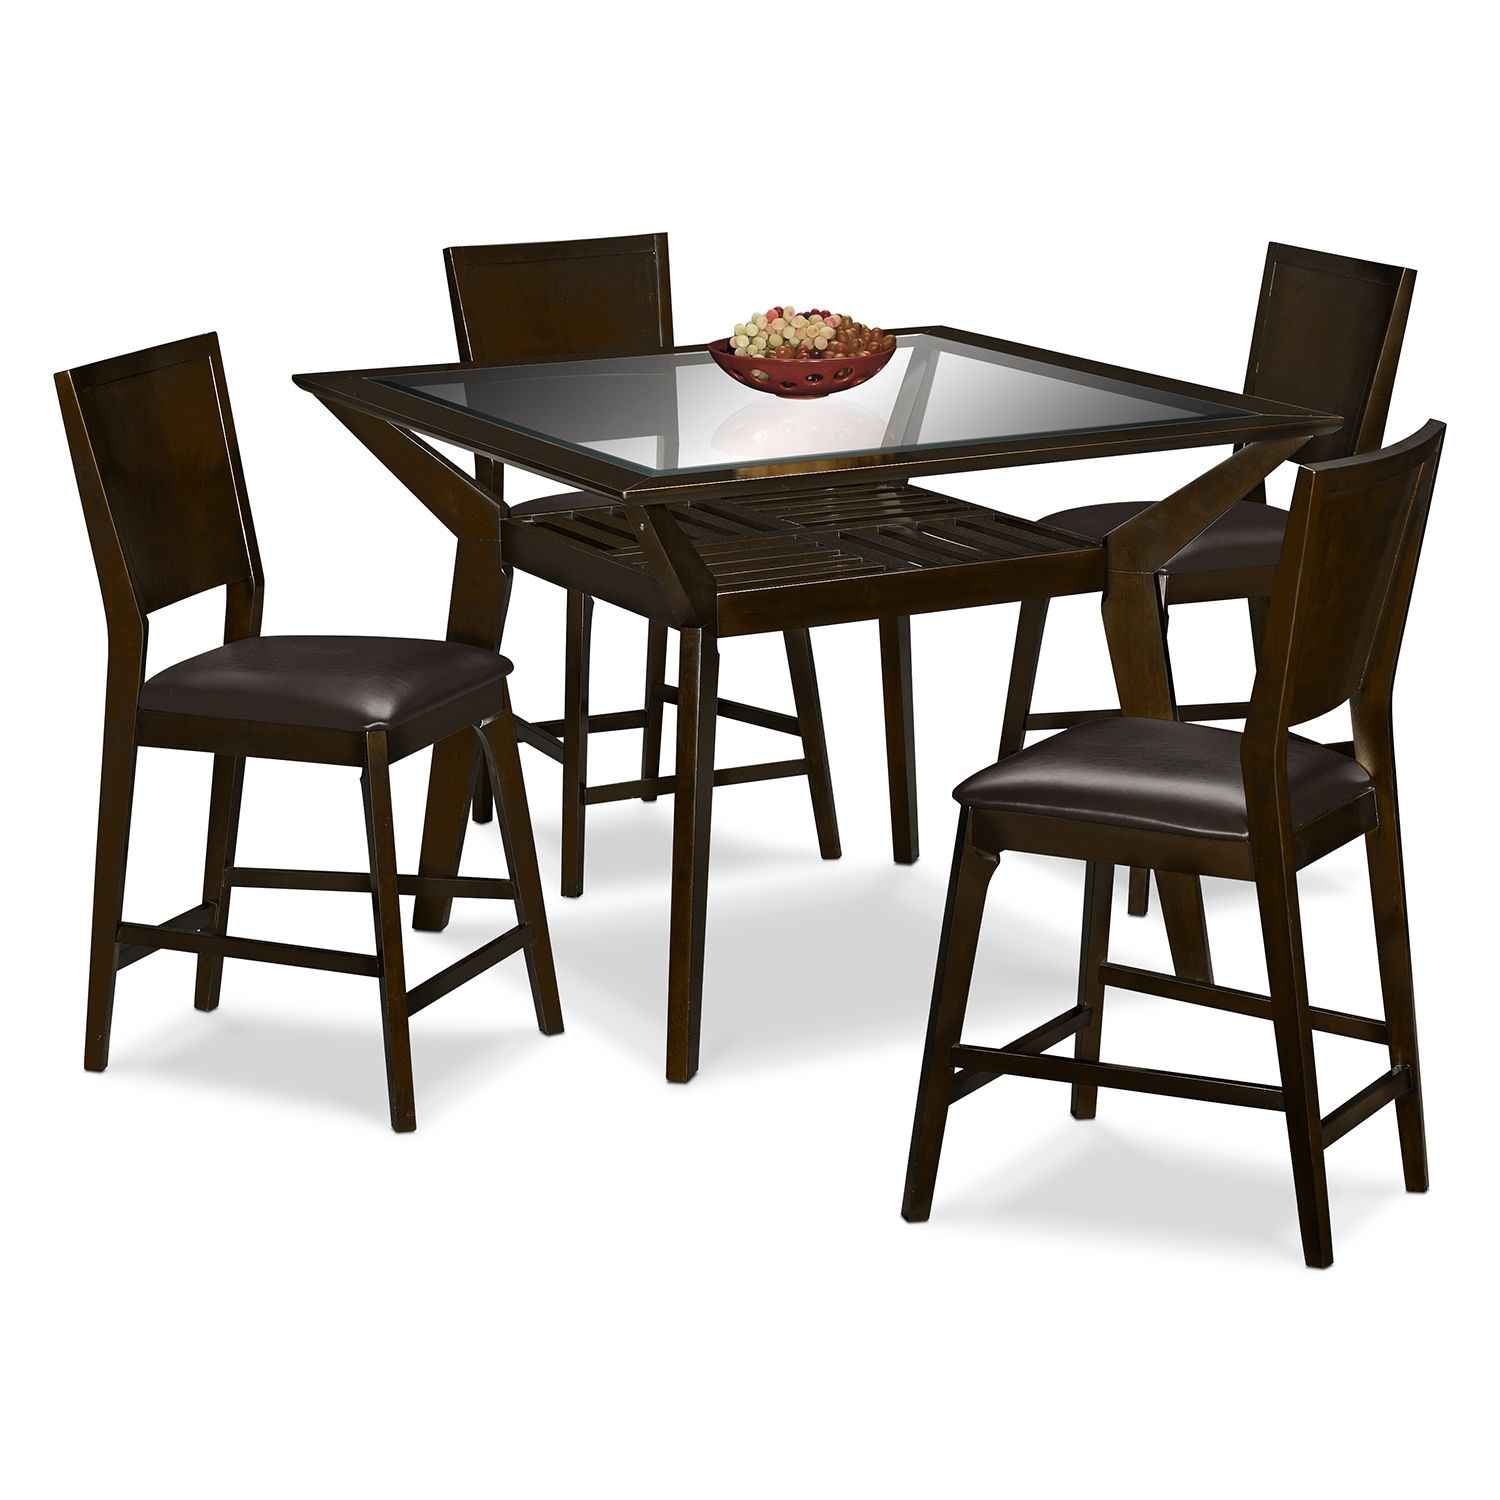 Dining Room Furniture Mystic Counter Height Table And 4 Chairs Merlot And Chocolate Dining Furniture Sets Dinette Sets Value City Furniture